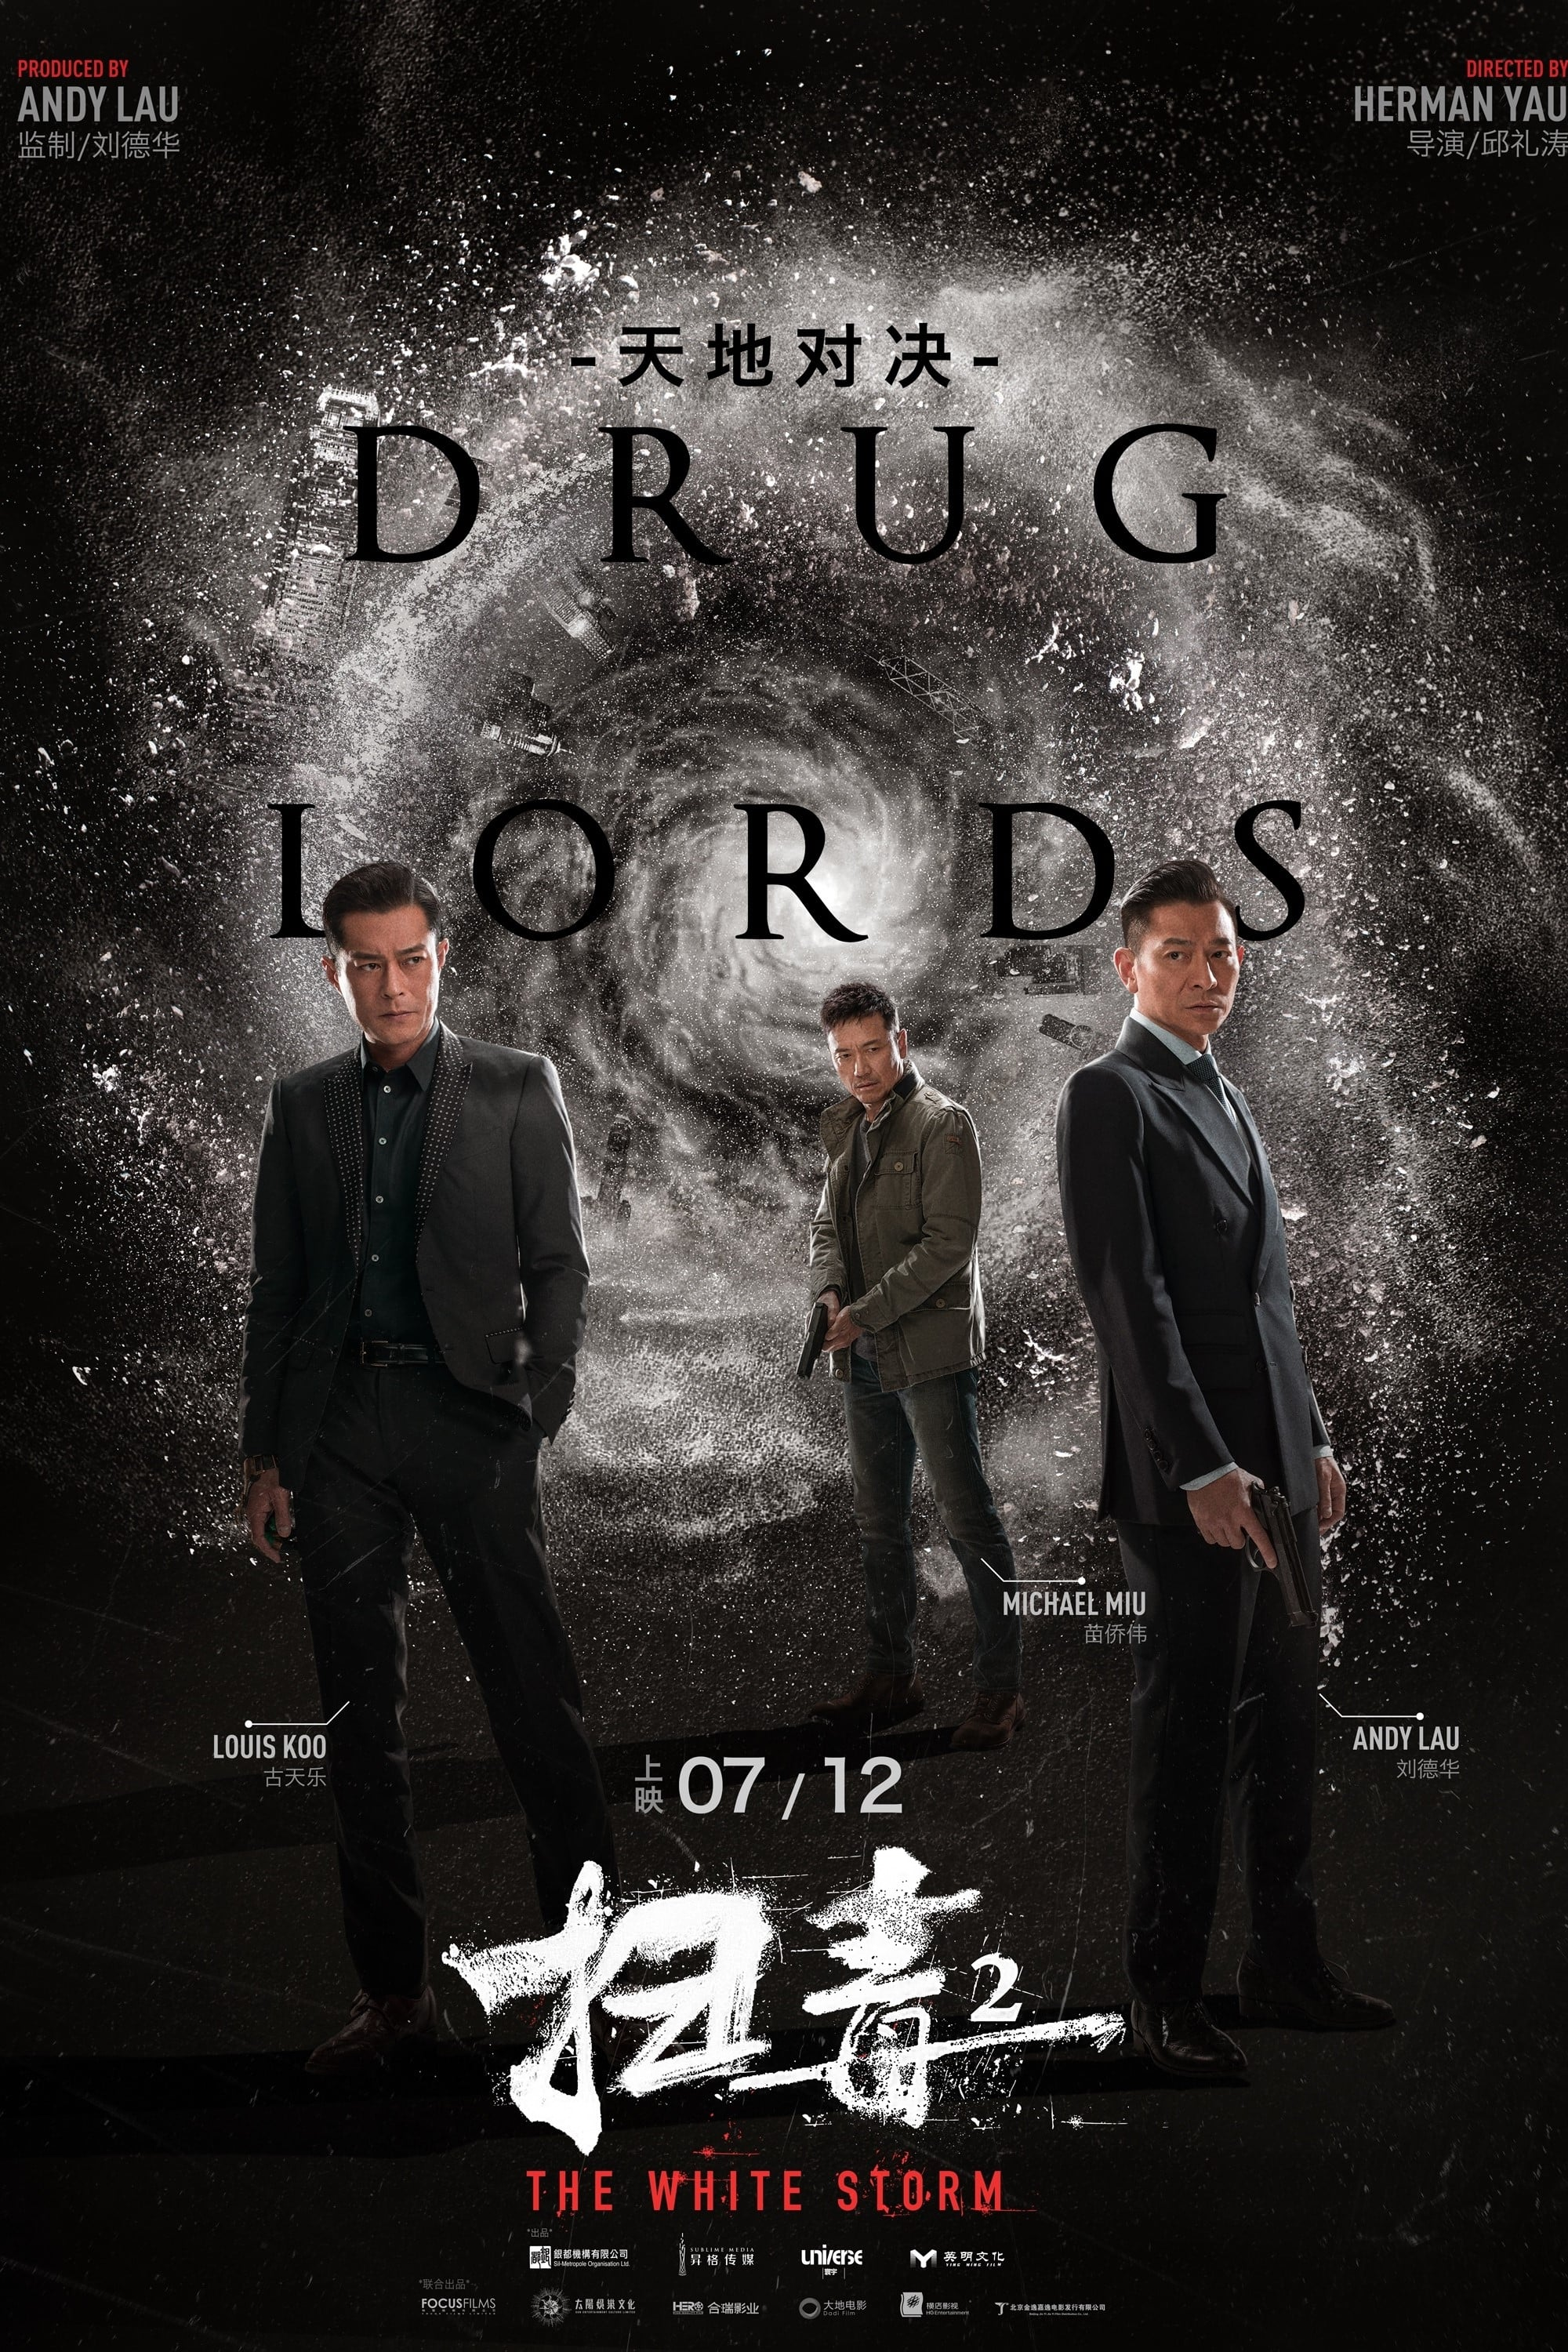 watch The White Storm 2: Drug Lords 2019 online free